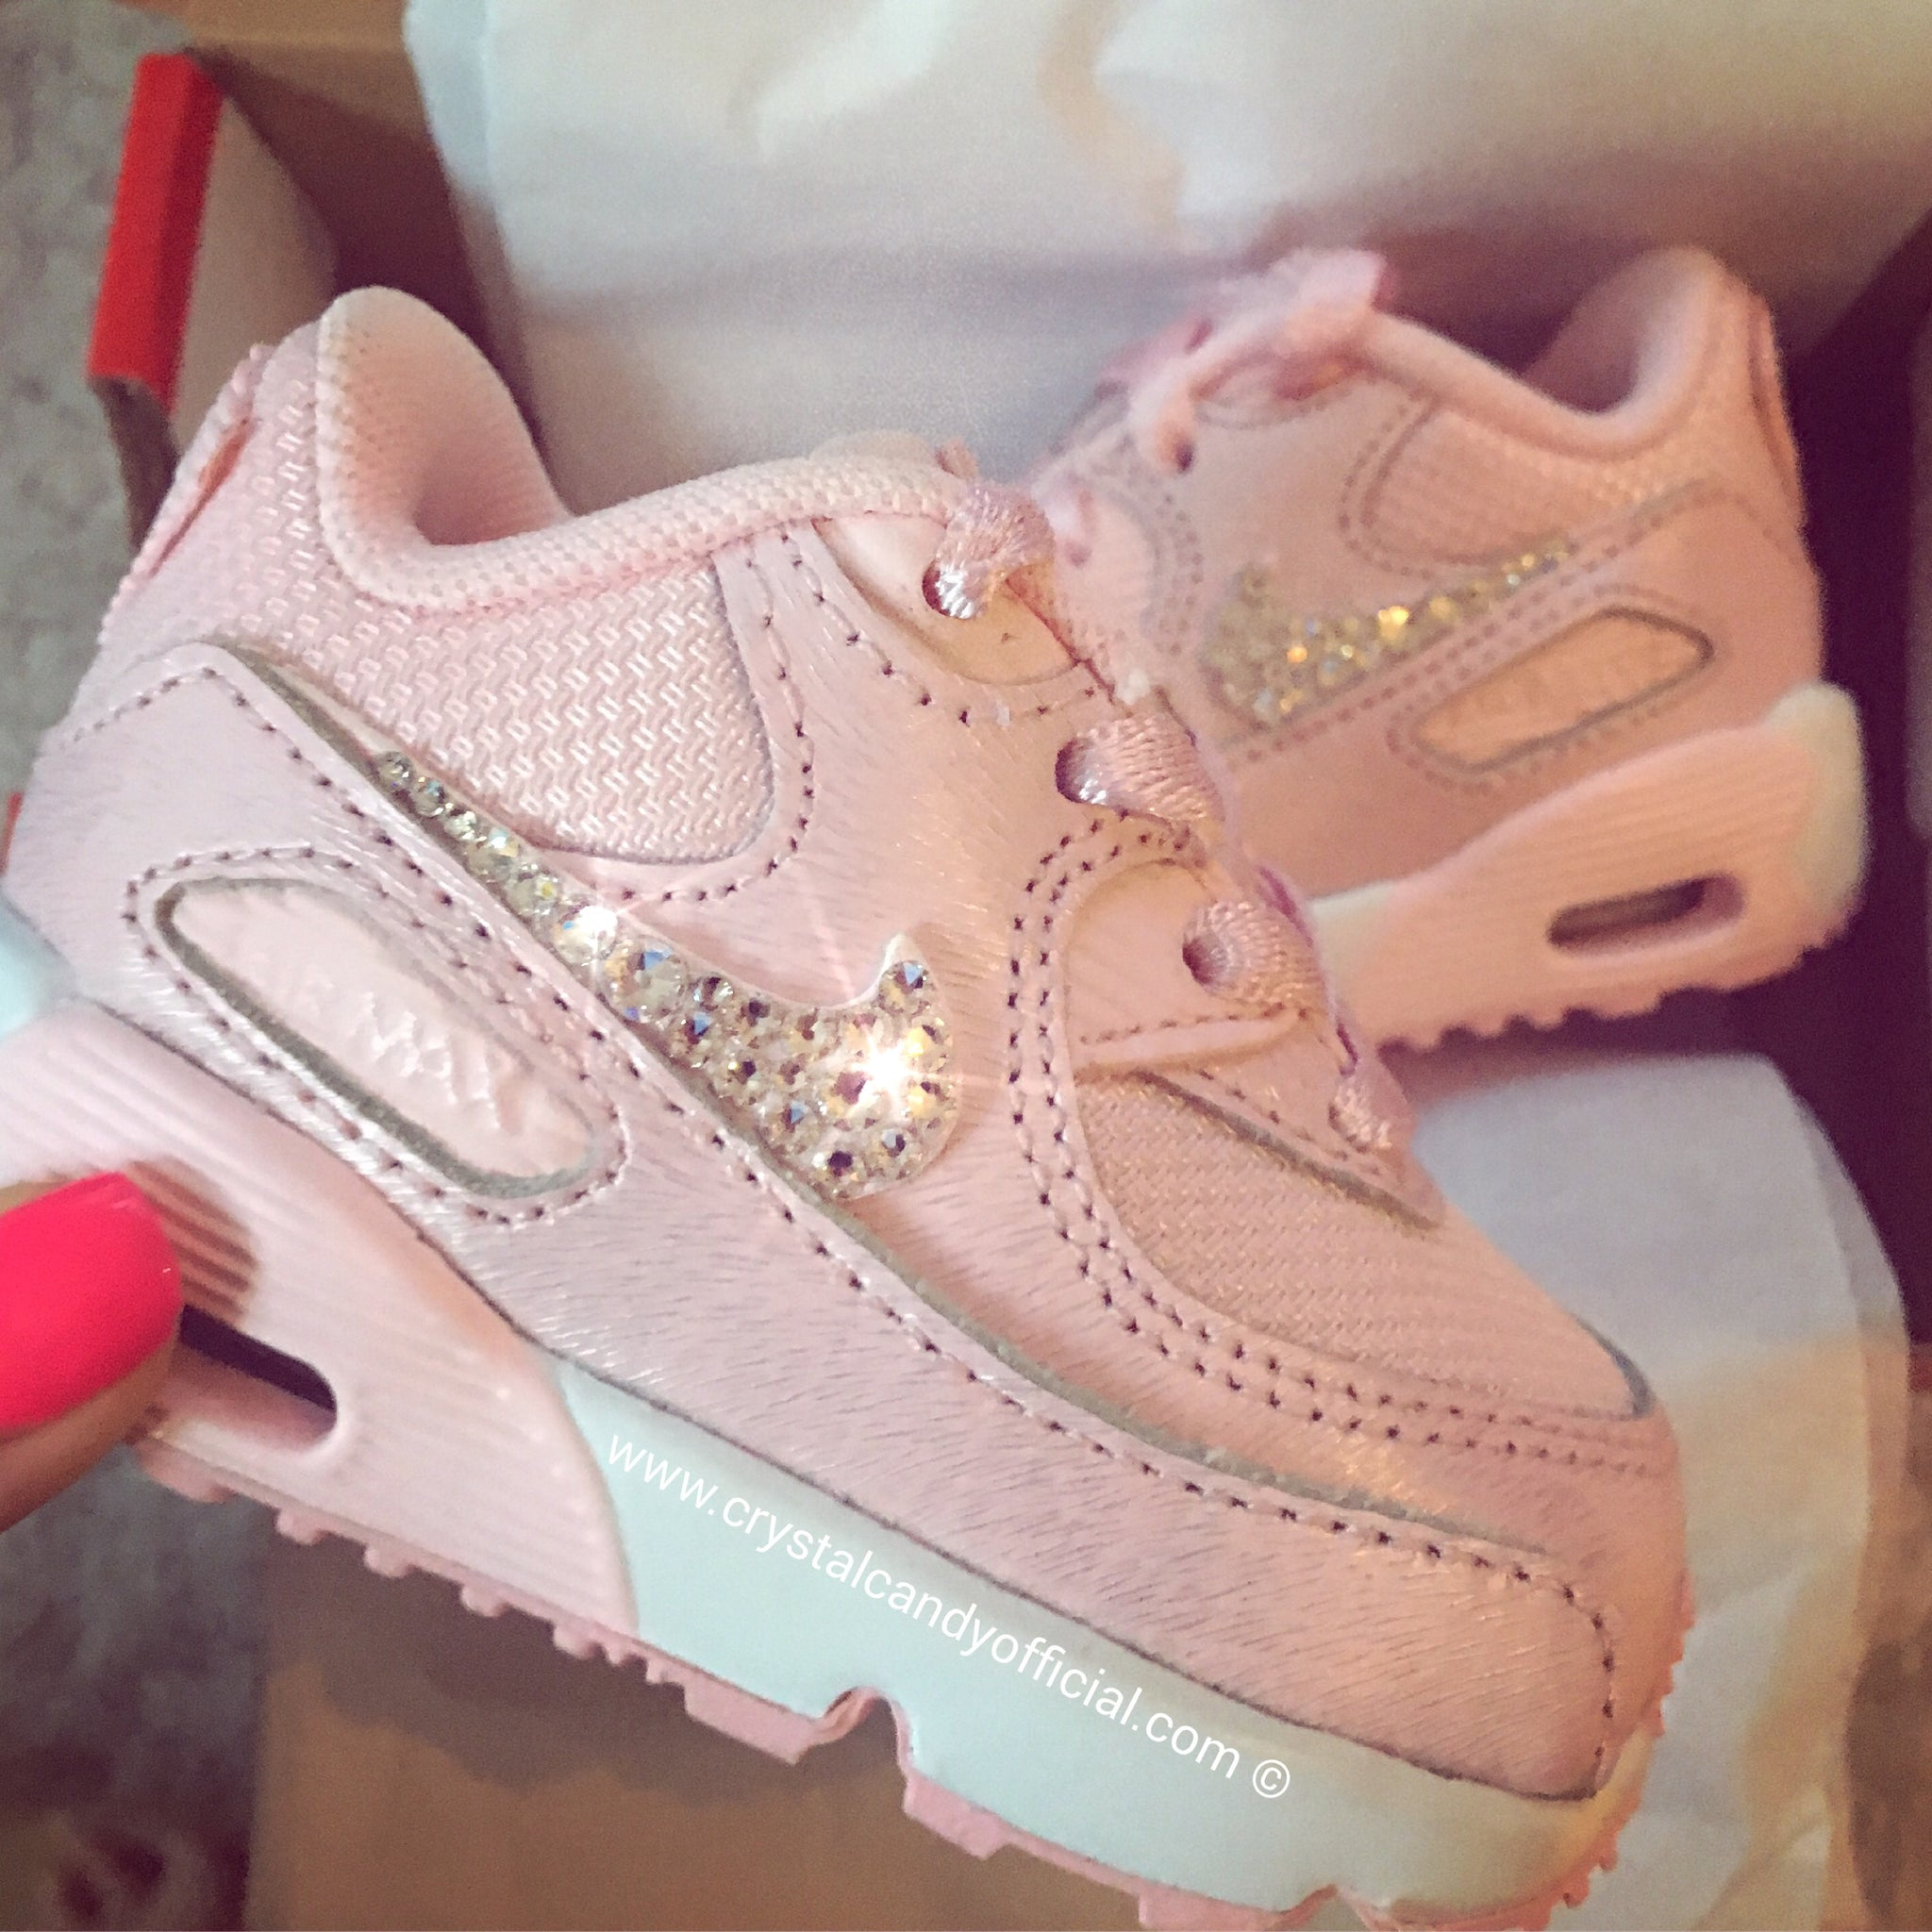 74741cb4d407 Crystal Kids Baby Pink Nike Air Max 90 s - Crystal Candy Limited